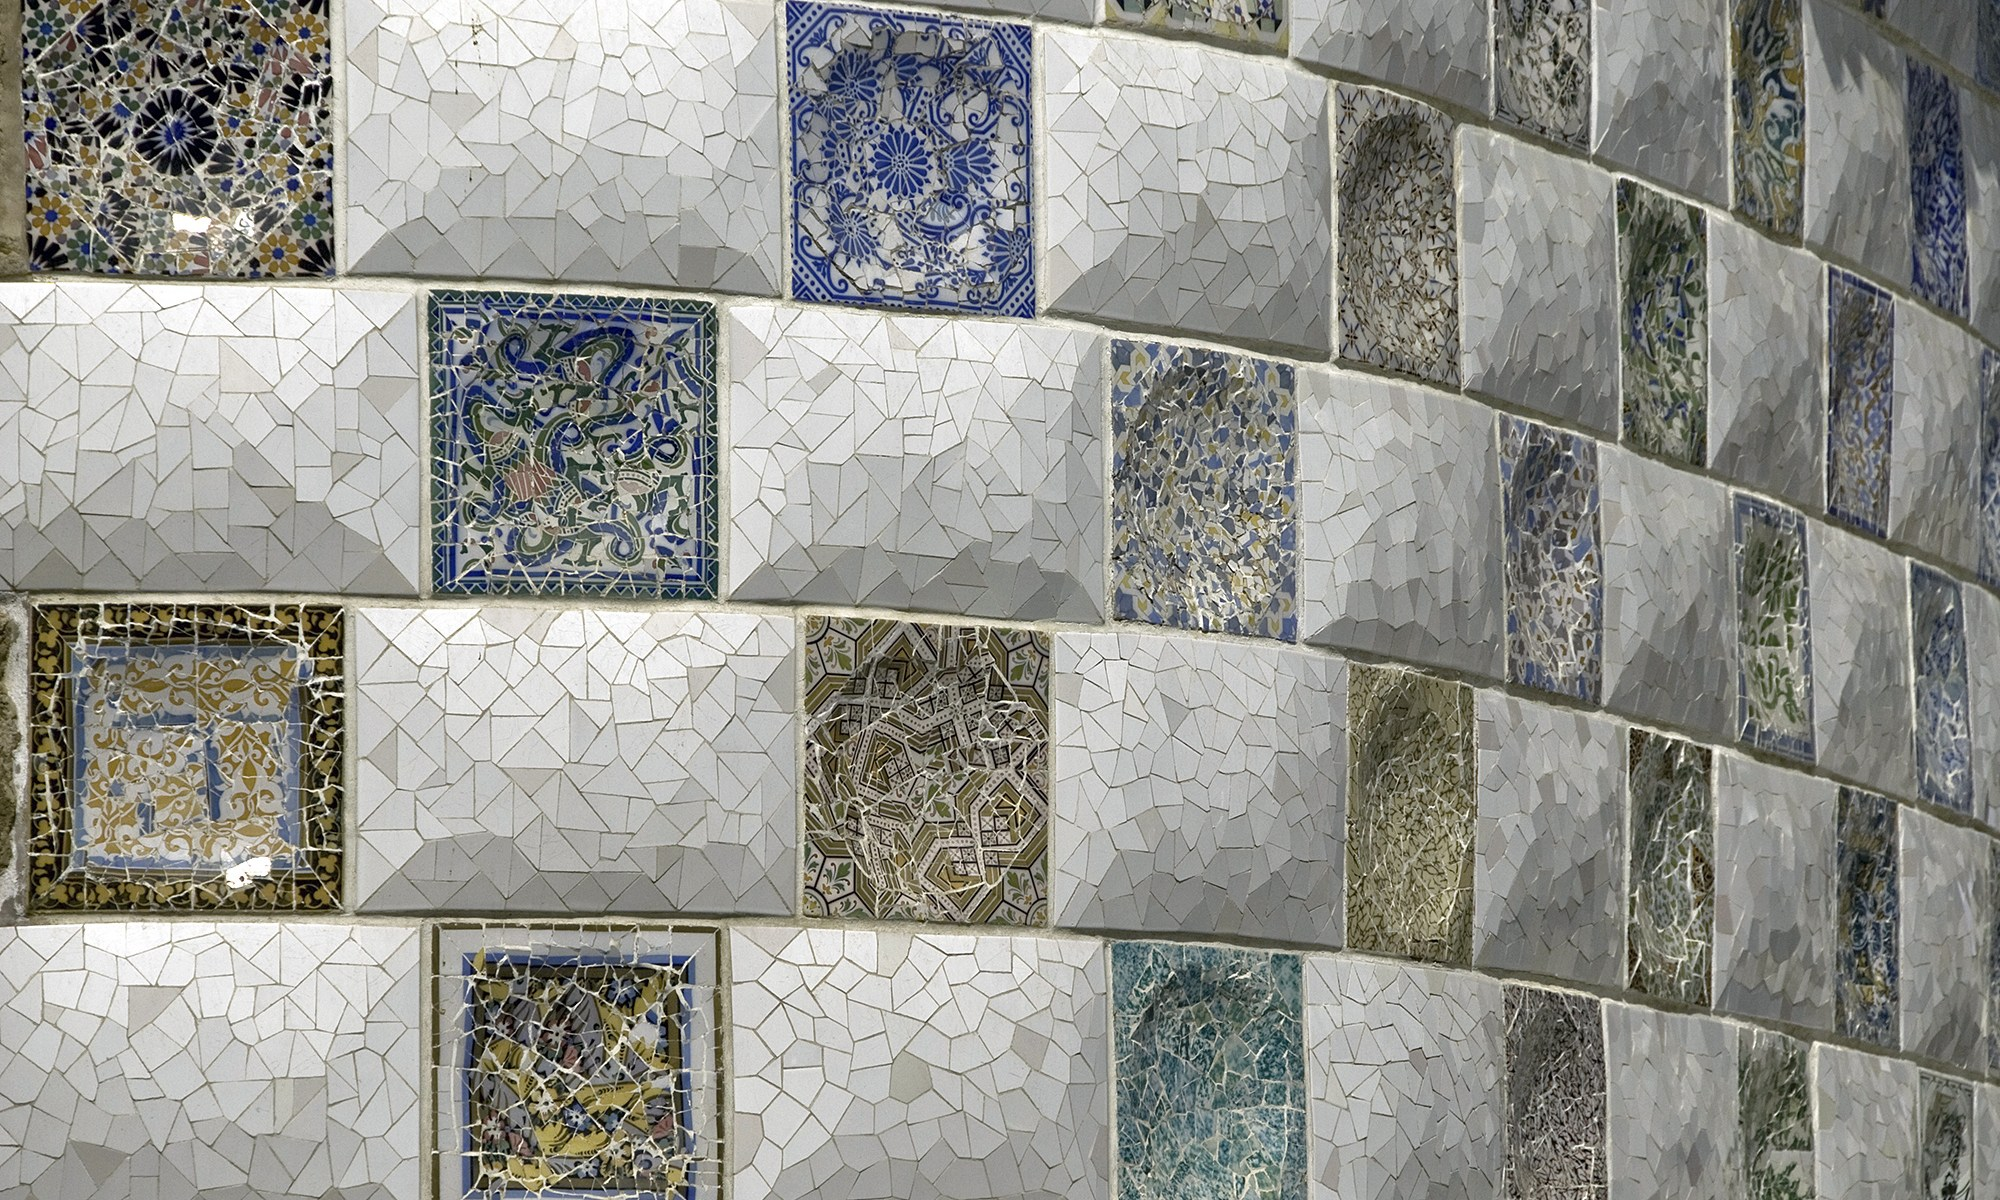 Tile Detail in Park Guell Barcelona